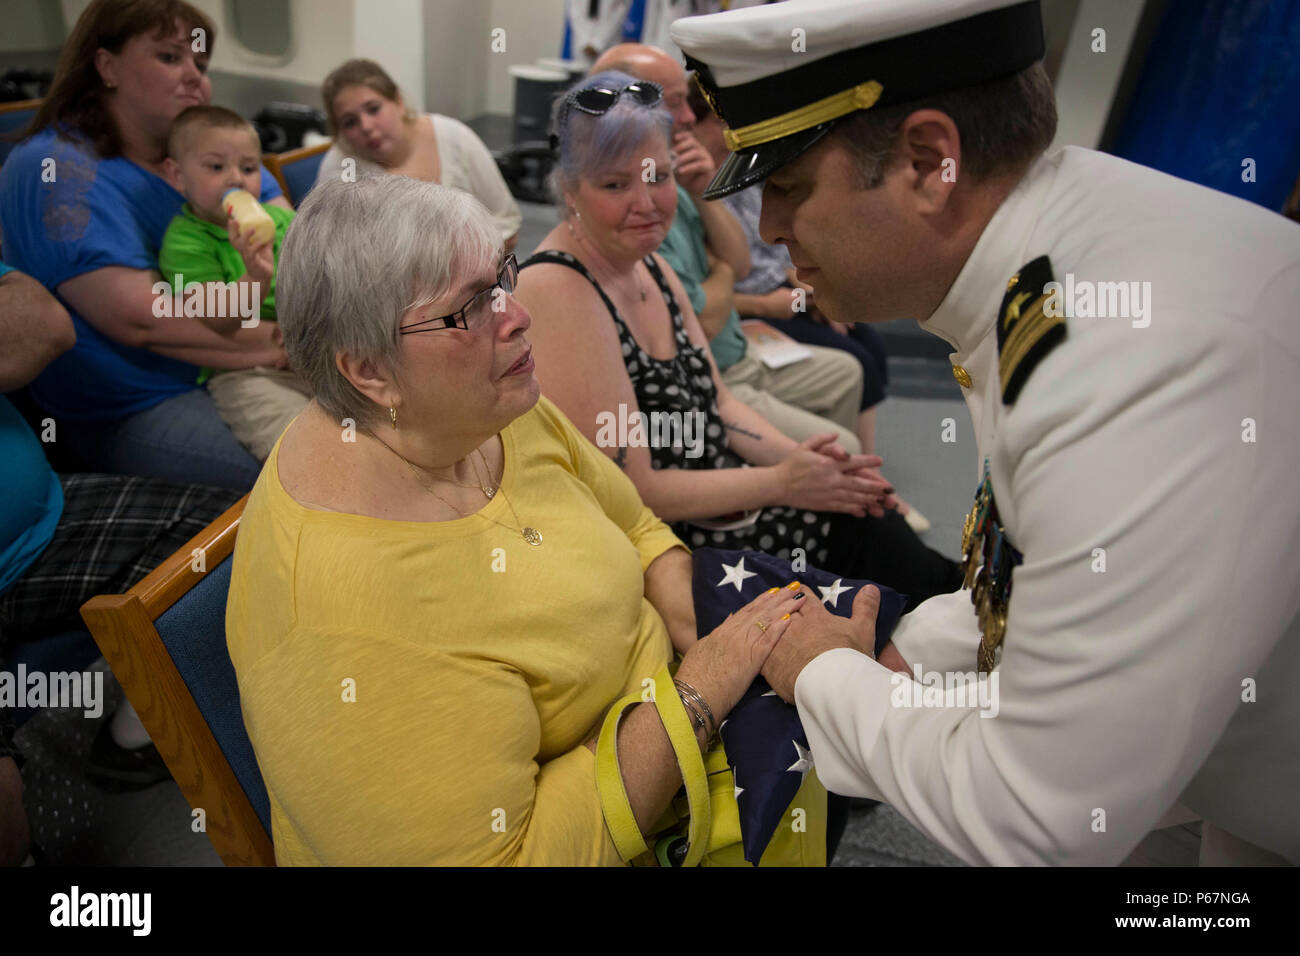 NEWPORT NEWS, Va. (May 13, 2016) -- Lt. Cmdr. Michael Stone, assigned to Pre-Commissioning Unit Gerald R. Ford (CVN 78), presents his mother, Pamela S. Stone, with the national ensign during his retirement ceremony in the ship's forecastle. Ford is the first of a new class of aircraft carriers currently under construction by Huntington Ingalls Industries Newport News Shipbuilding. (U.S. Navy photo by Mass Communication Specialist Seaman Apprentice Connor Loessin/Released) - Stock Image